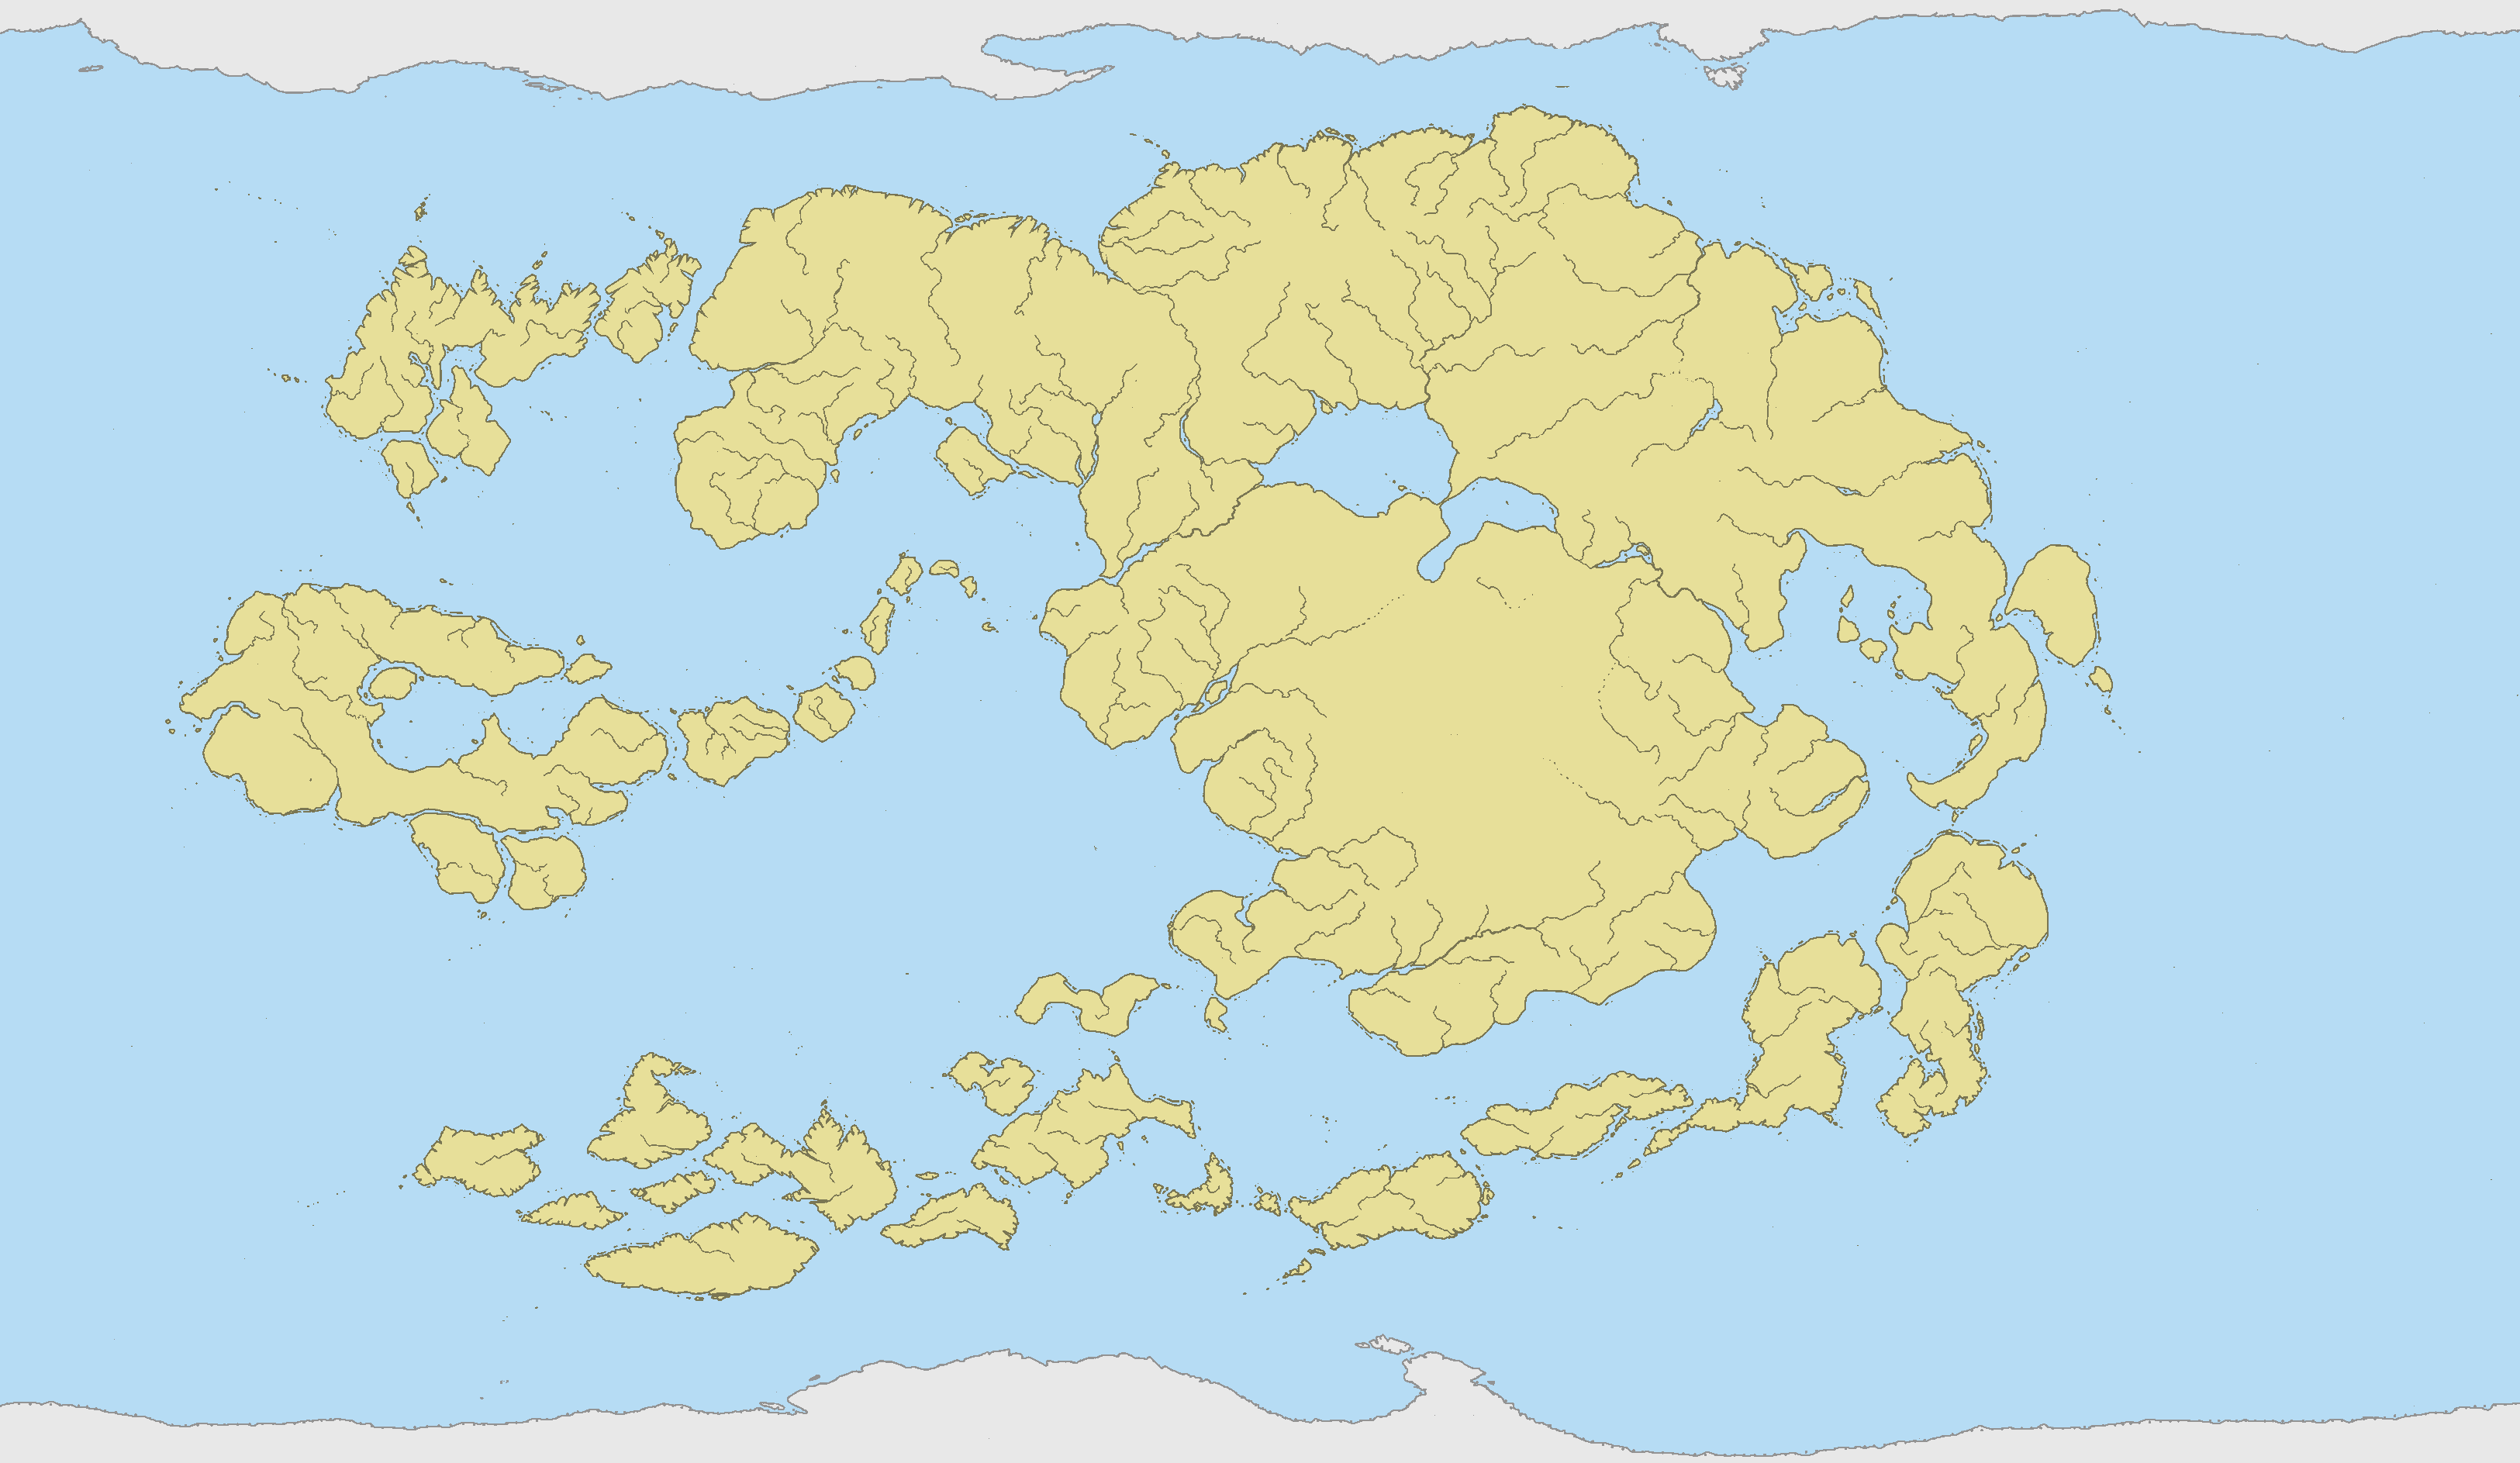 Hadaril Cartographic Projects